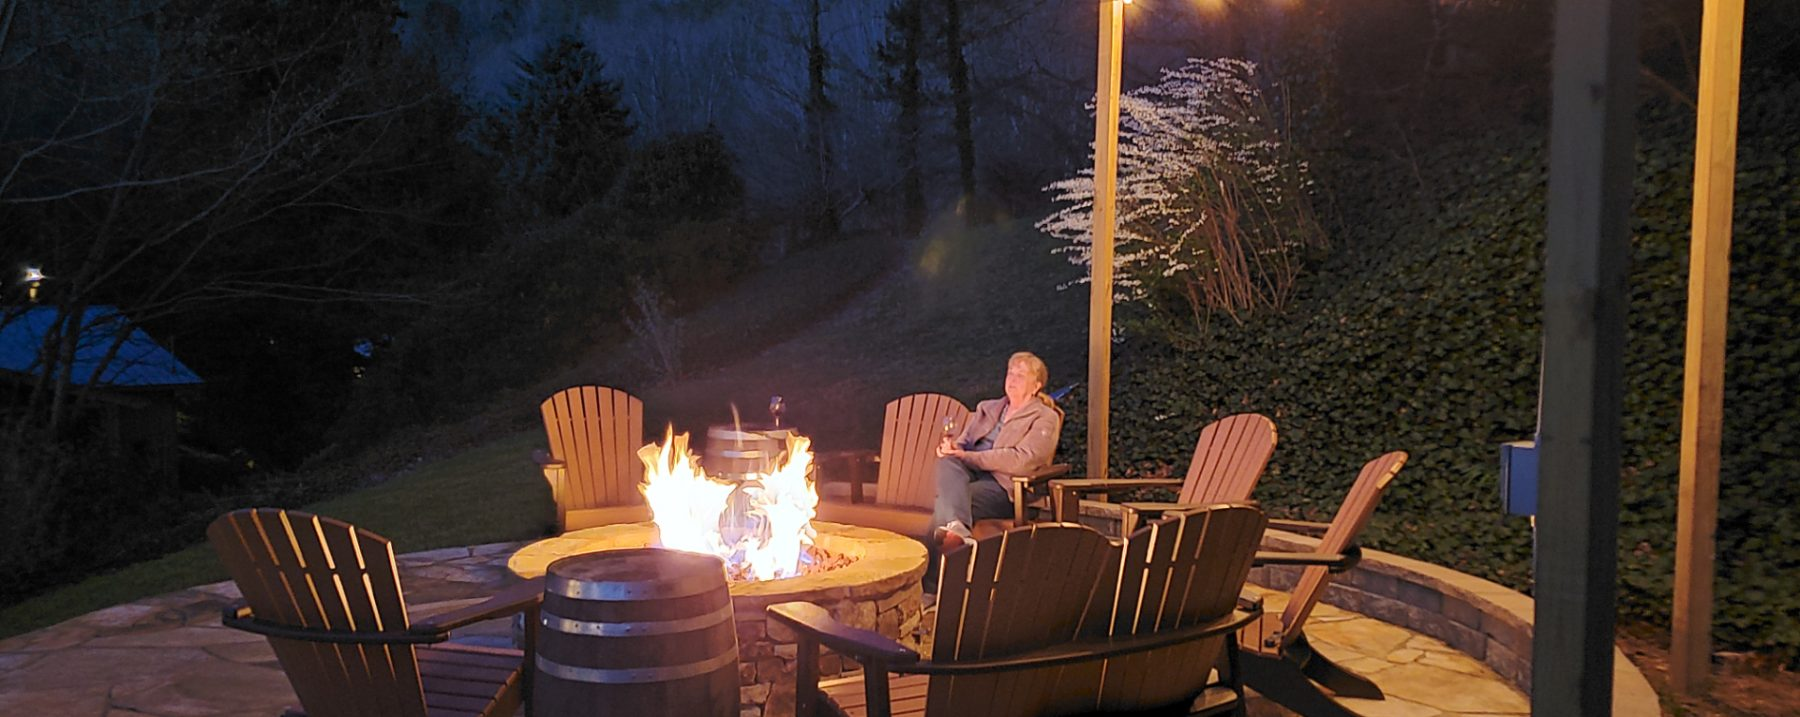 Image of Fire-Pit at Beechwood Inn for guest enjoyment